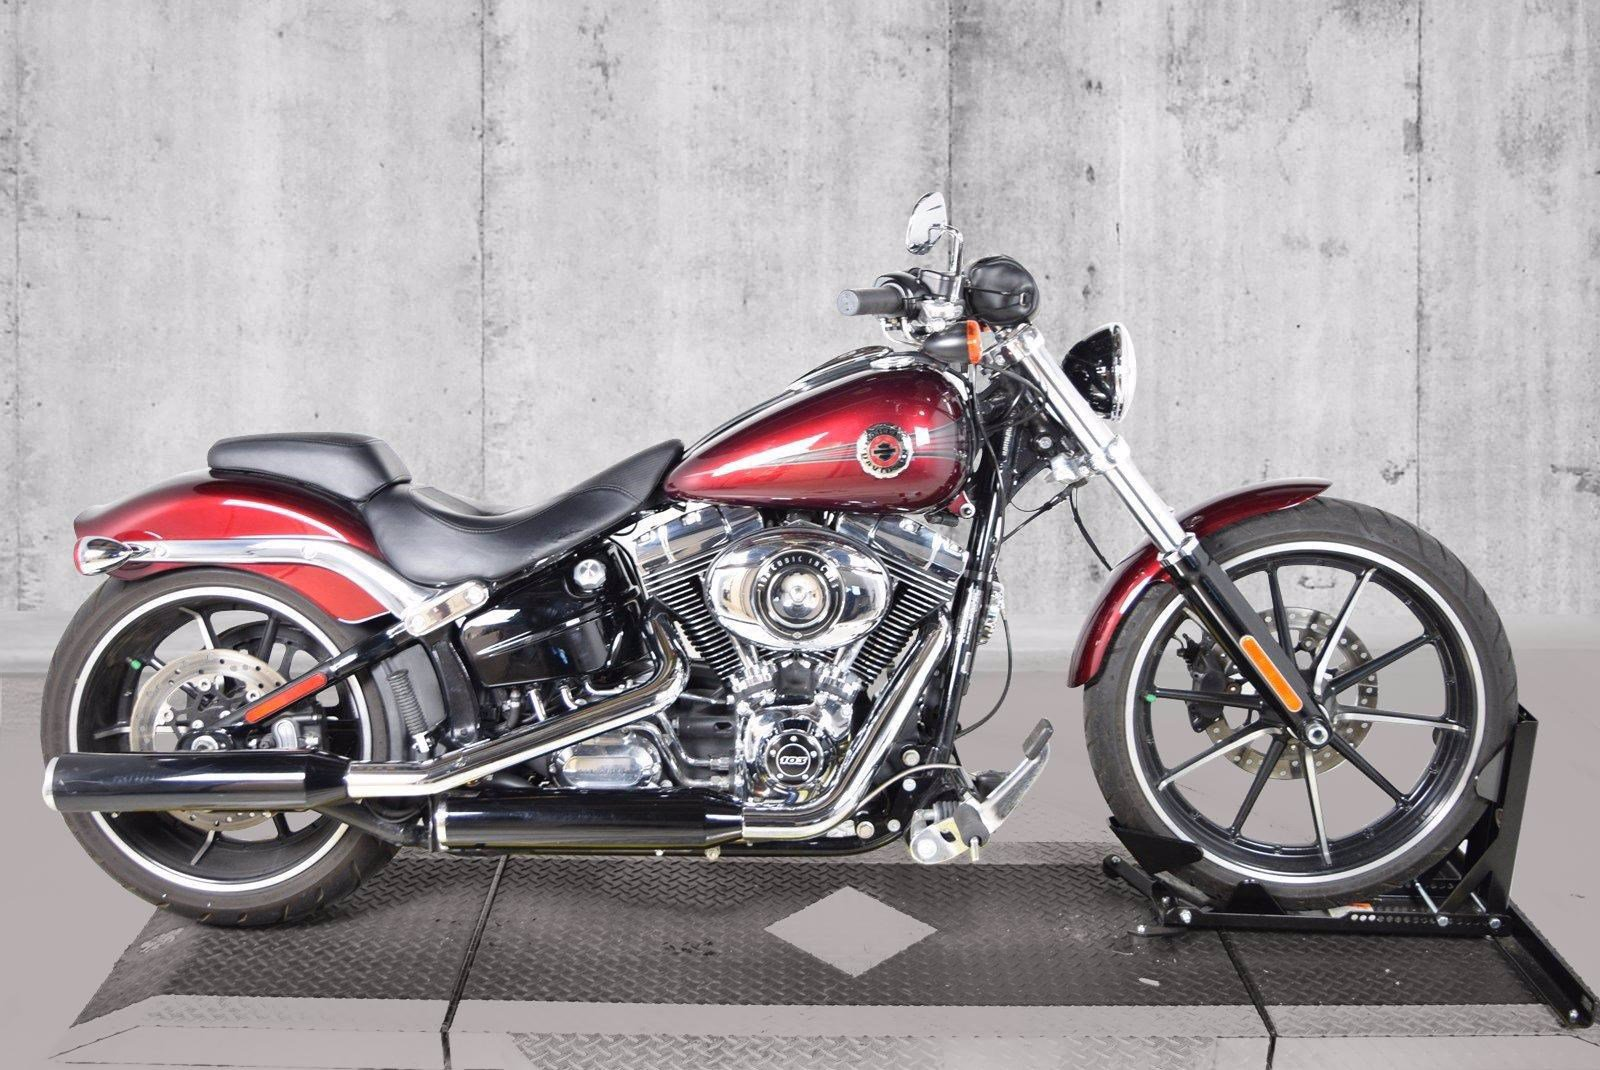 Pre-Owned 2015 Harley-Davidson Softail Breakout FXSB